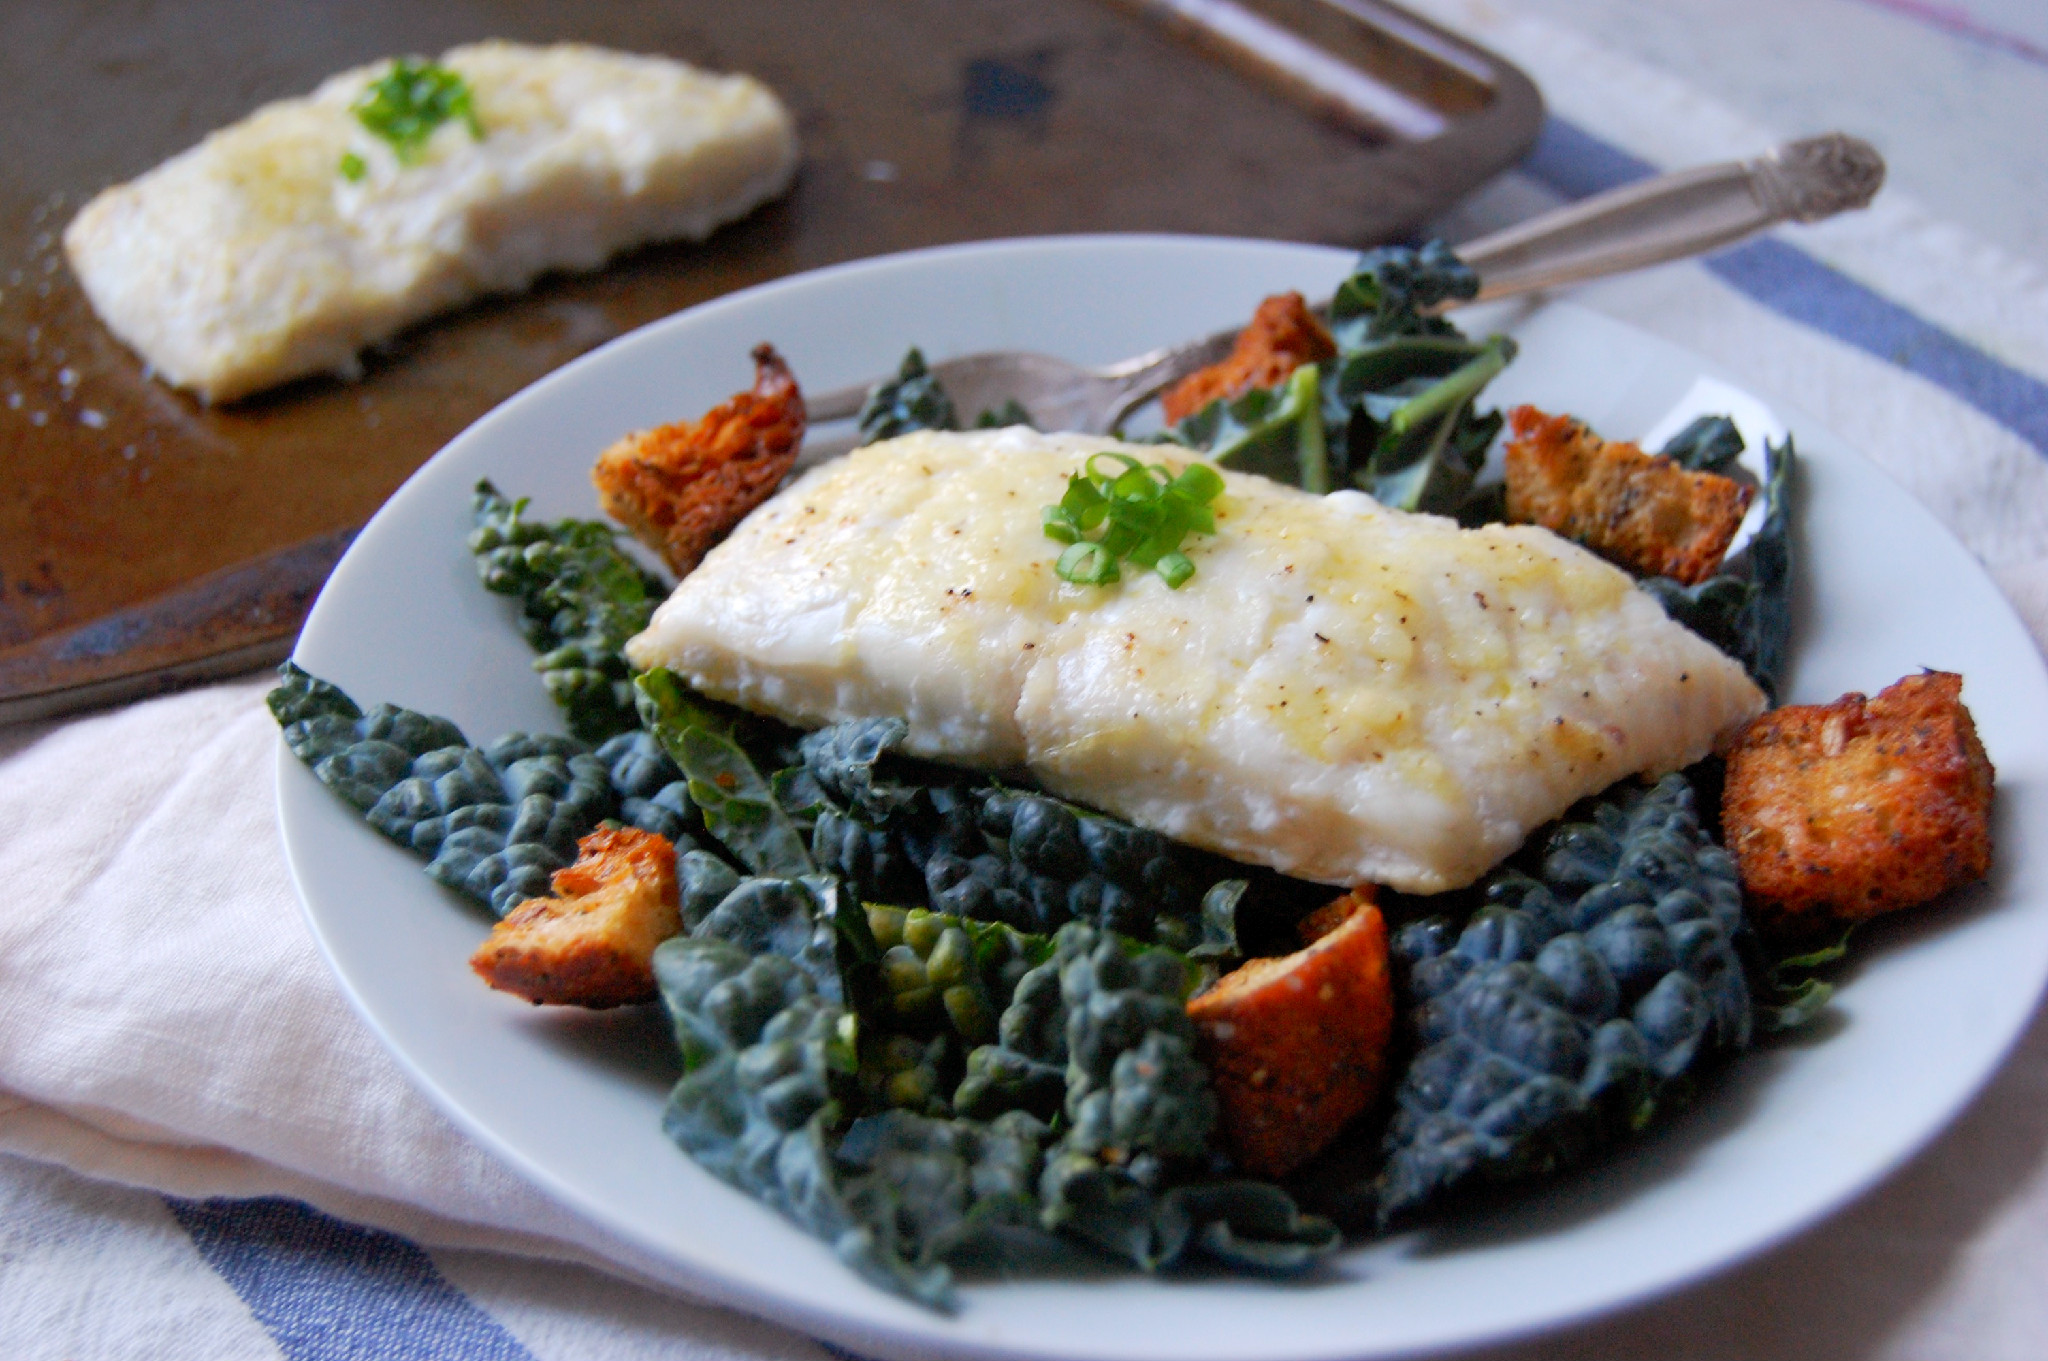 Haddock Cooking Recipes - Tasty, Fast and Very Useful 3